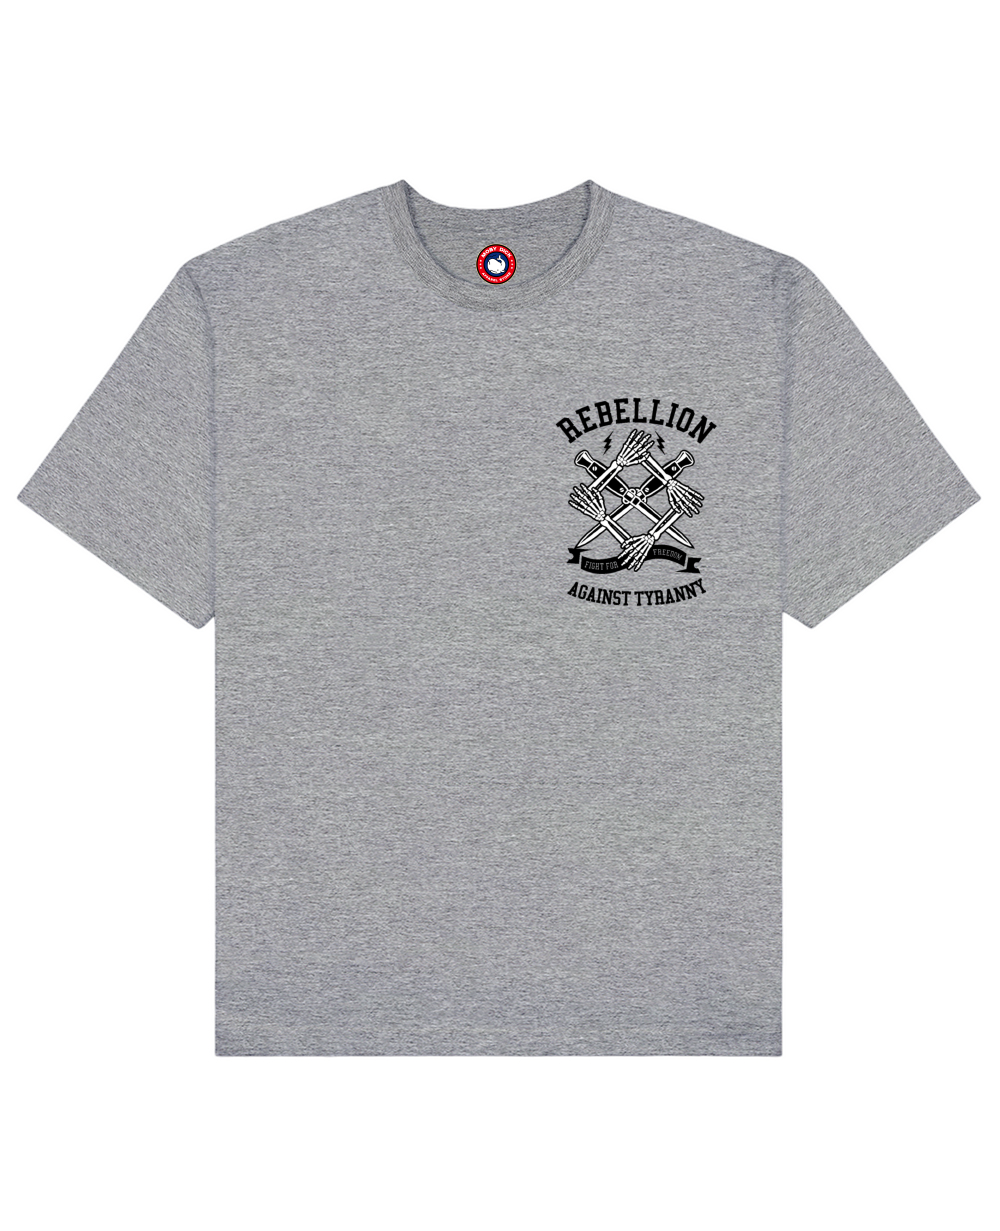 Rebellion Print T-Shirt in Gray - T-Shirts - MOBY DICK - BRANMA